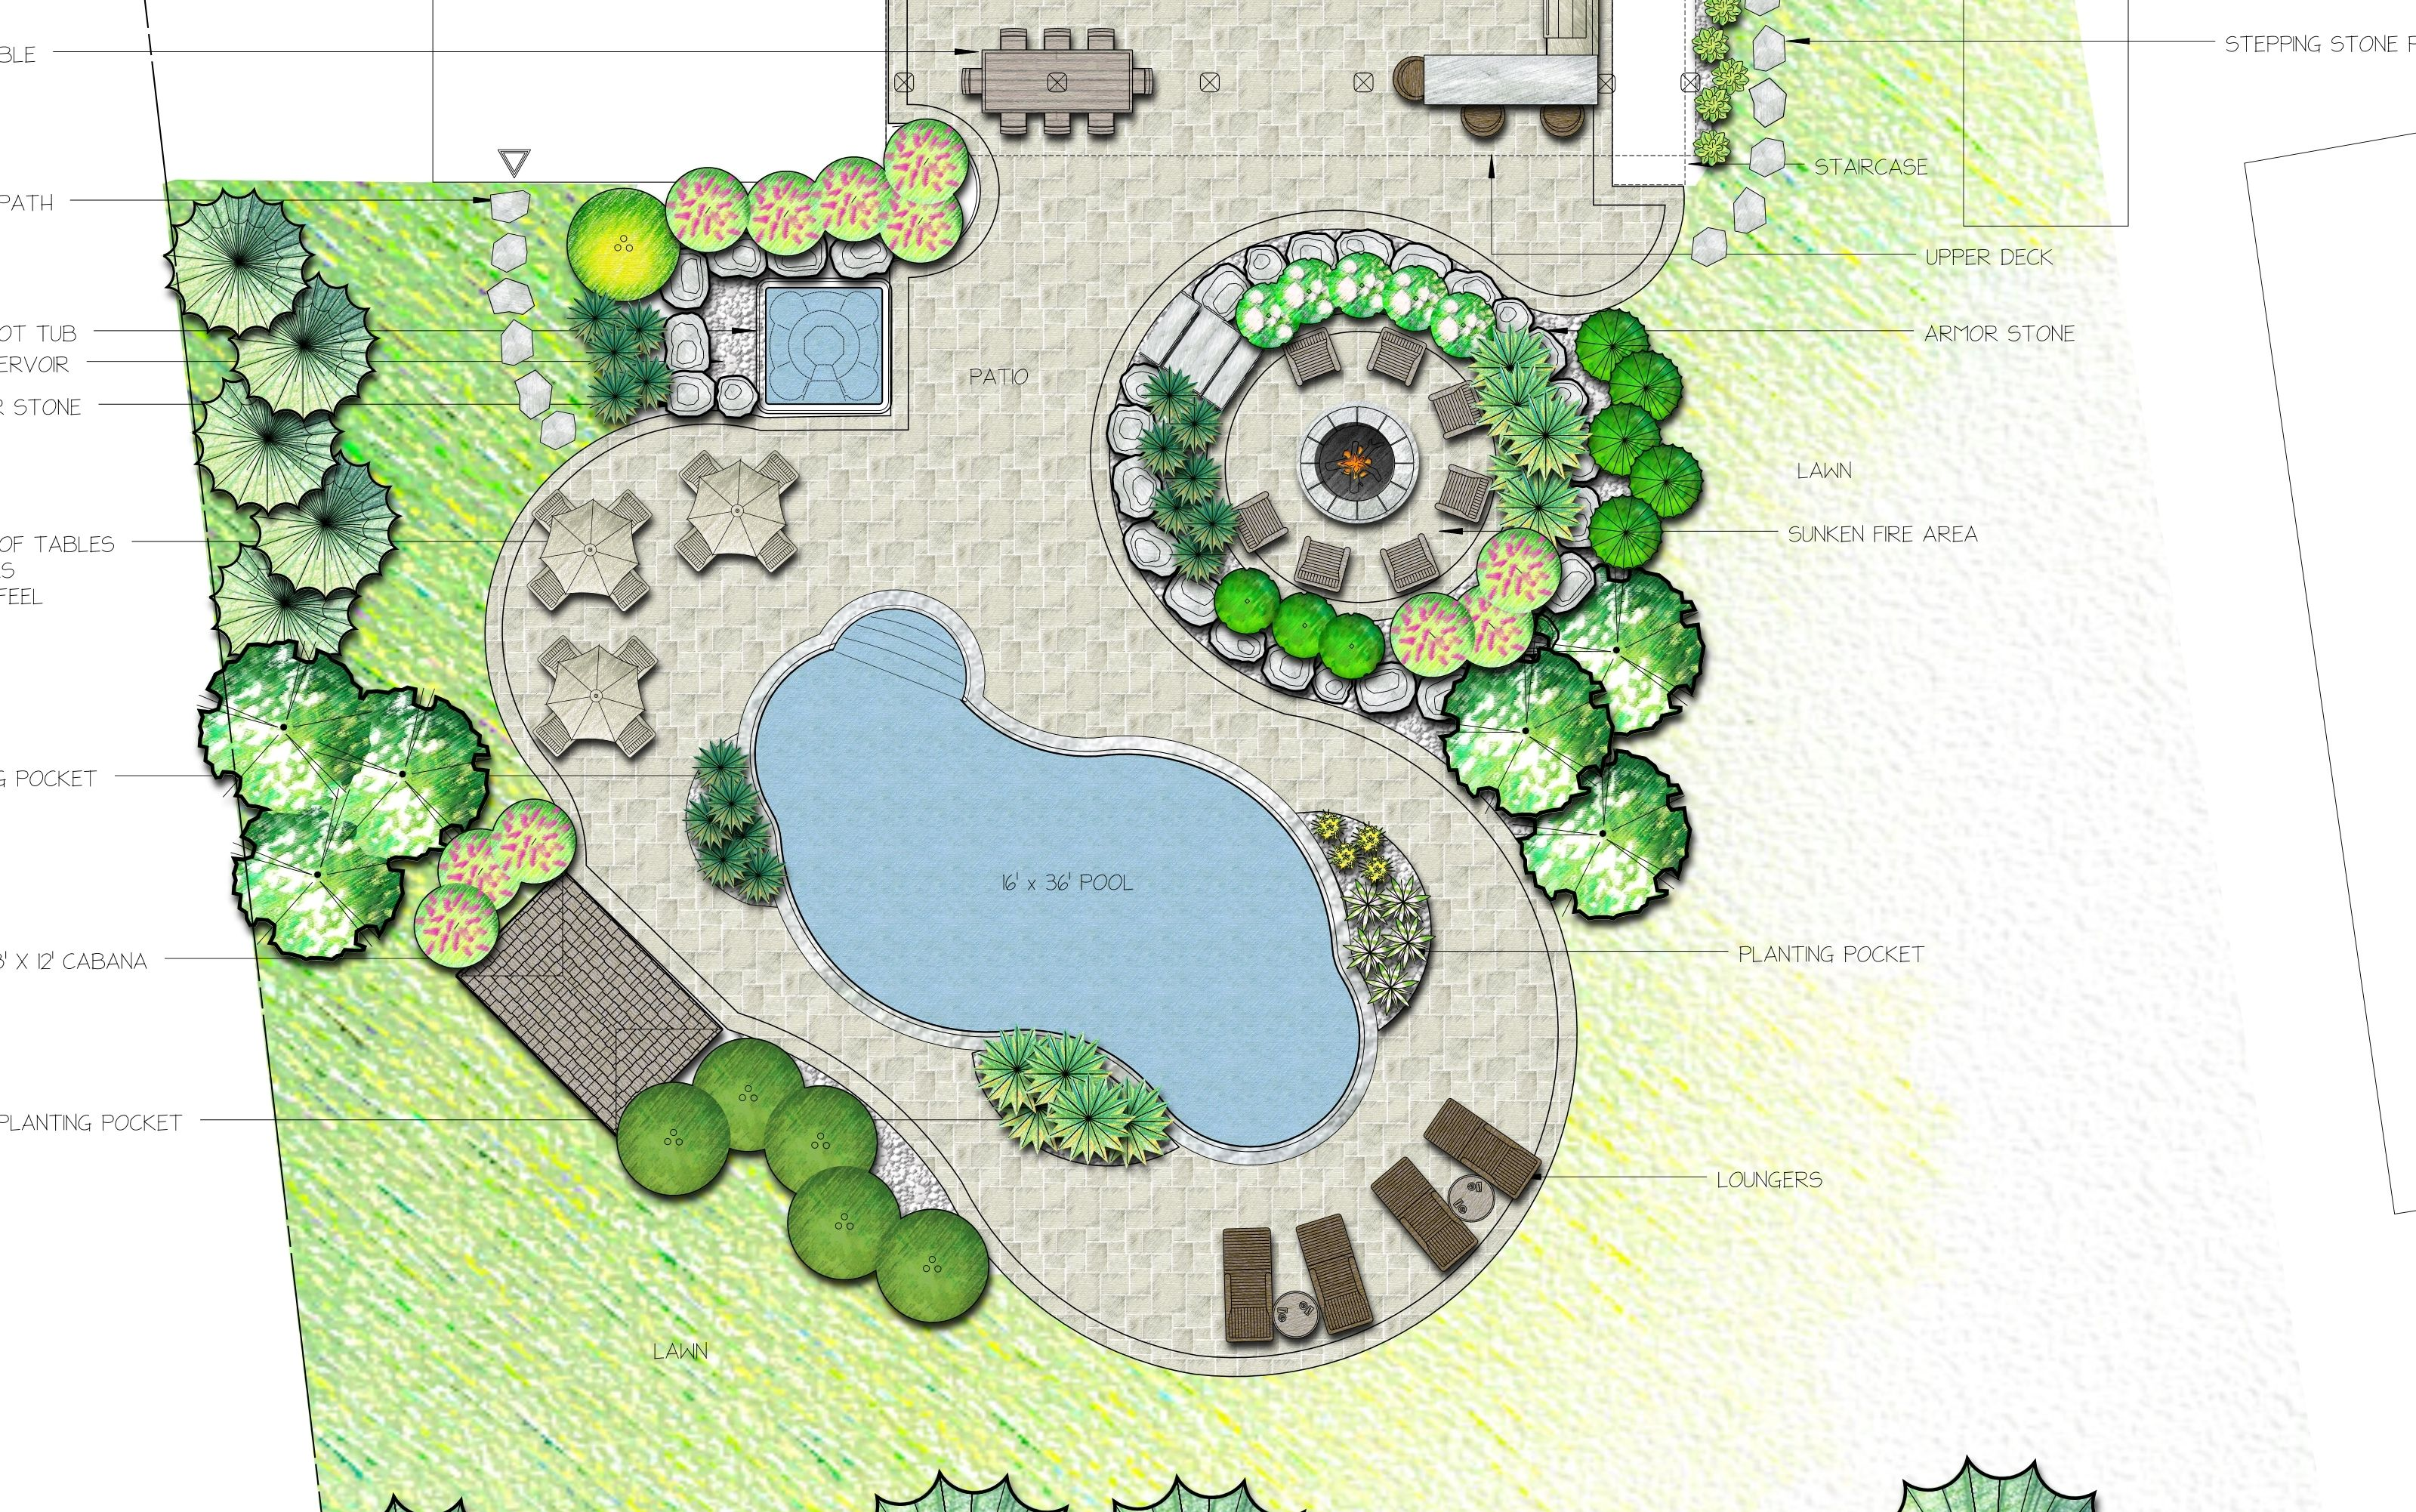 Curvilinear Backyard Landscape Plan With Sunken Fire Pit Area. Landscape  Design By Melanie Rekola